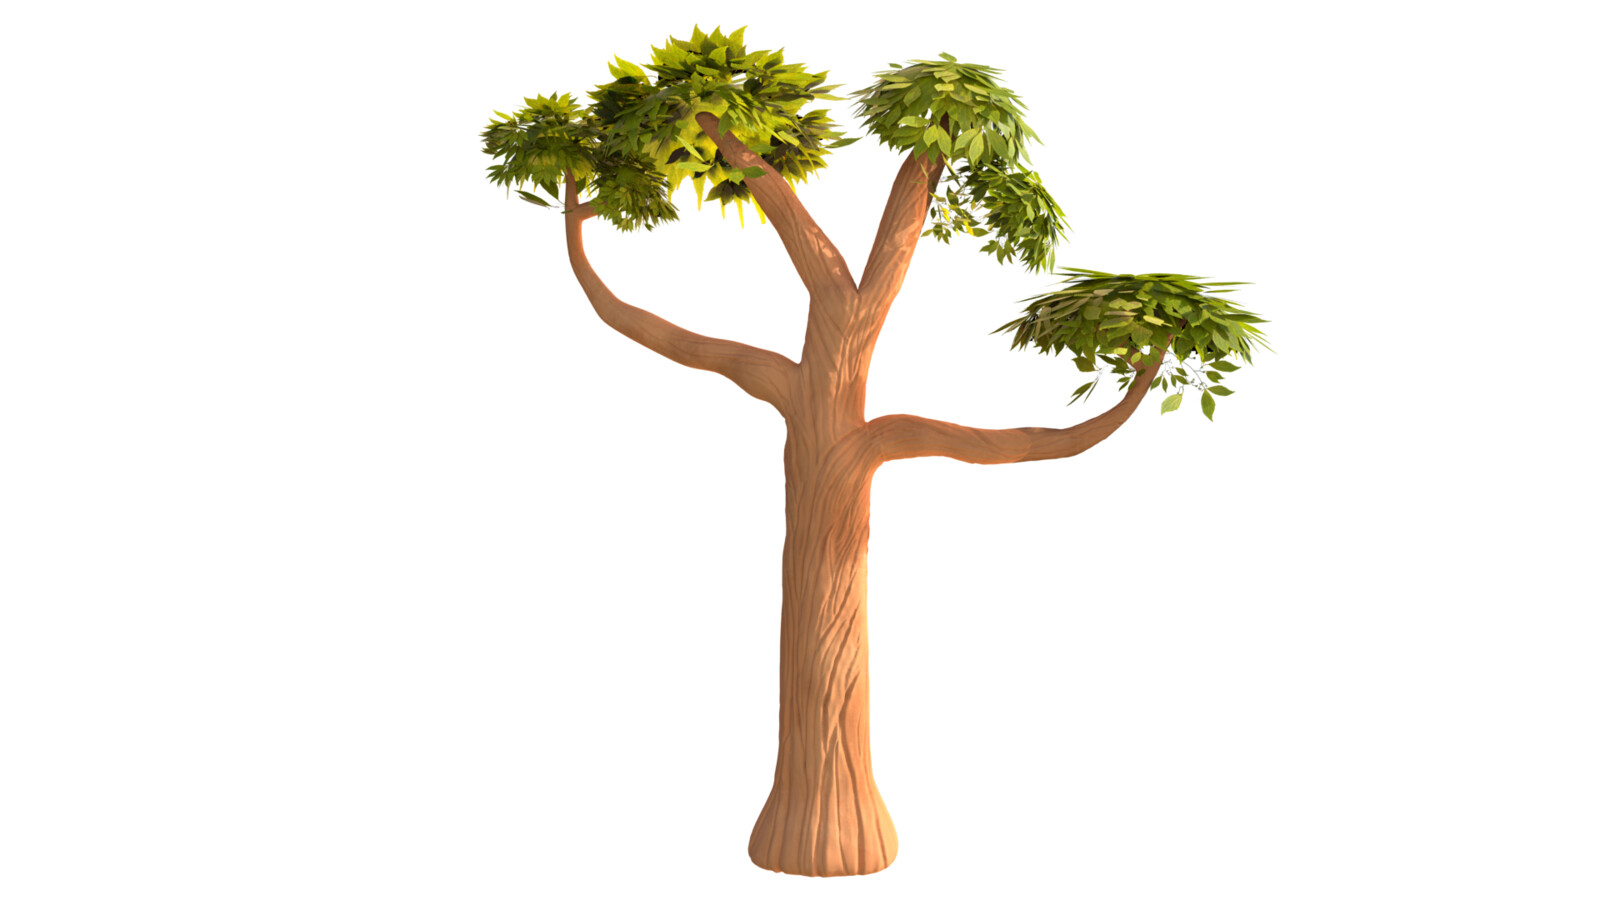 Tree modeled. Modeled in Maya and sculpted detail is done in Zbrush.